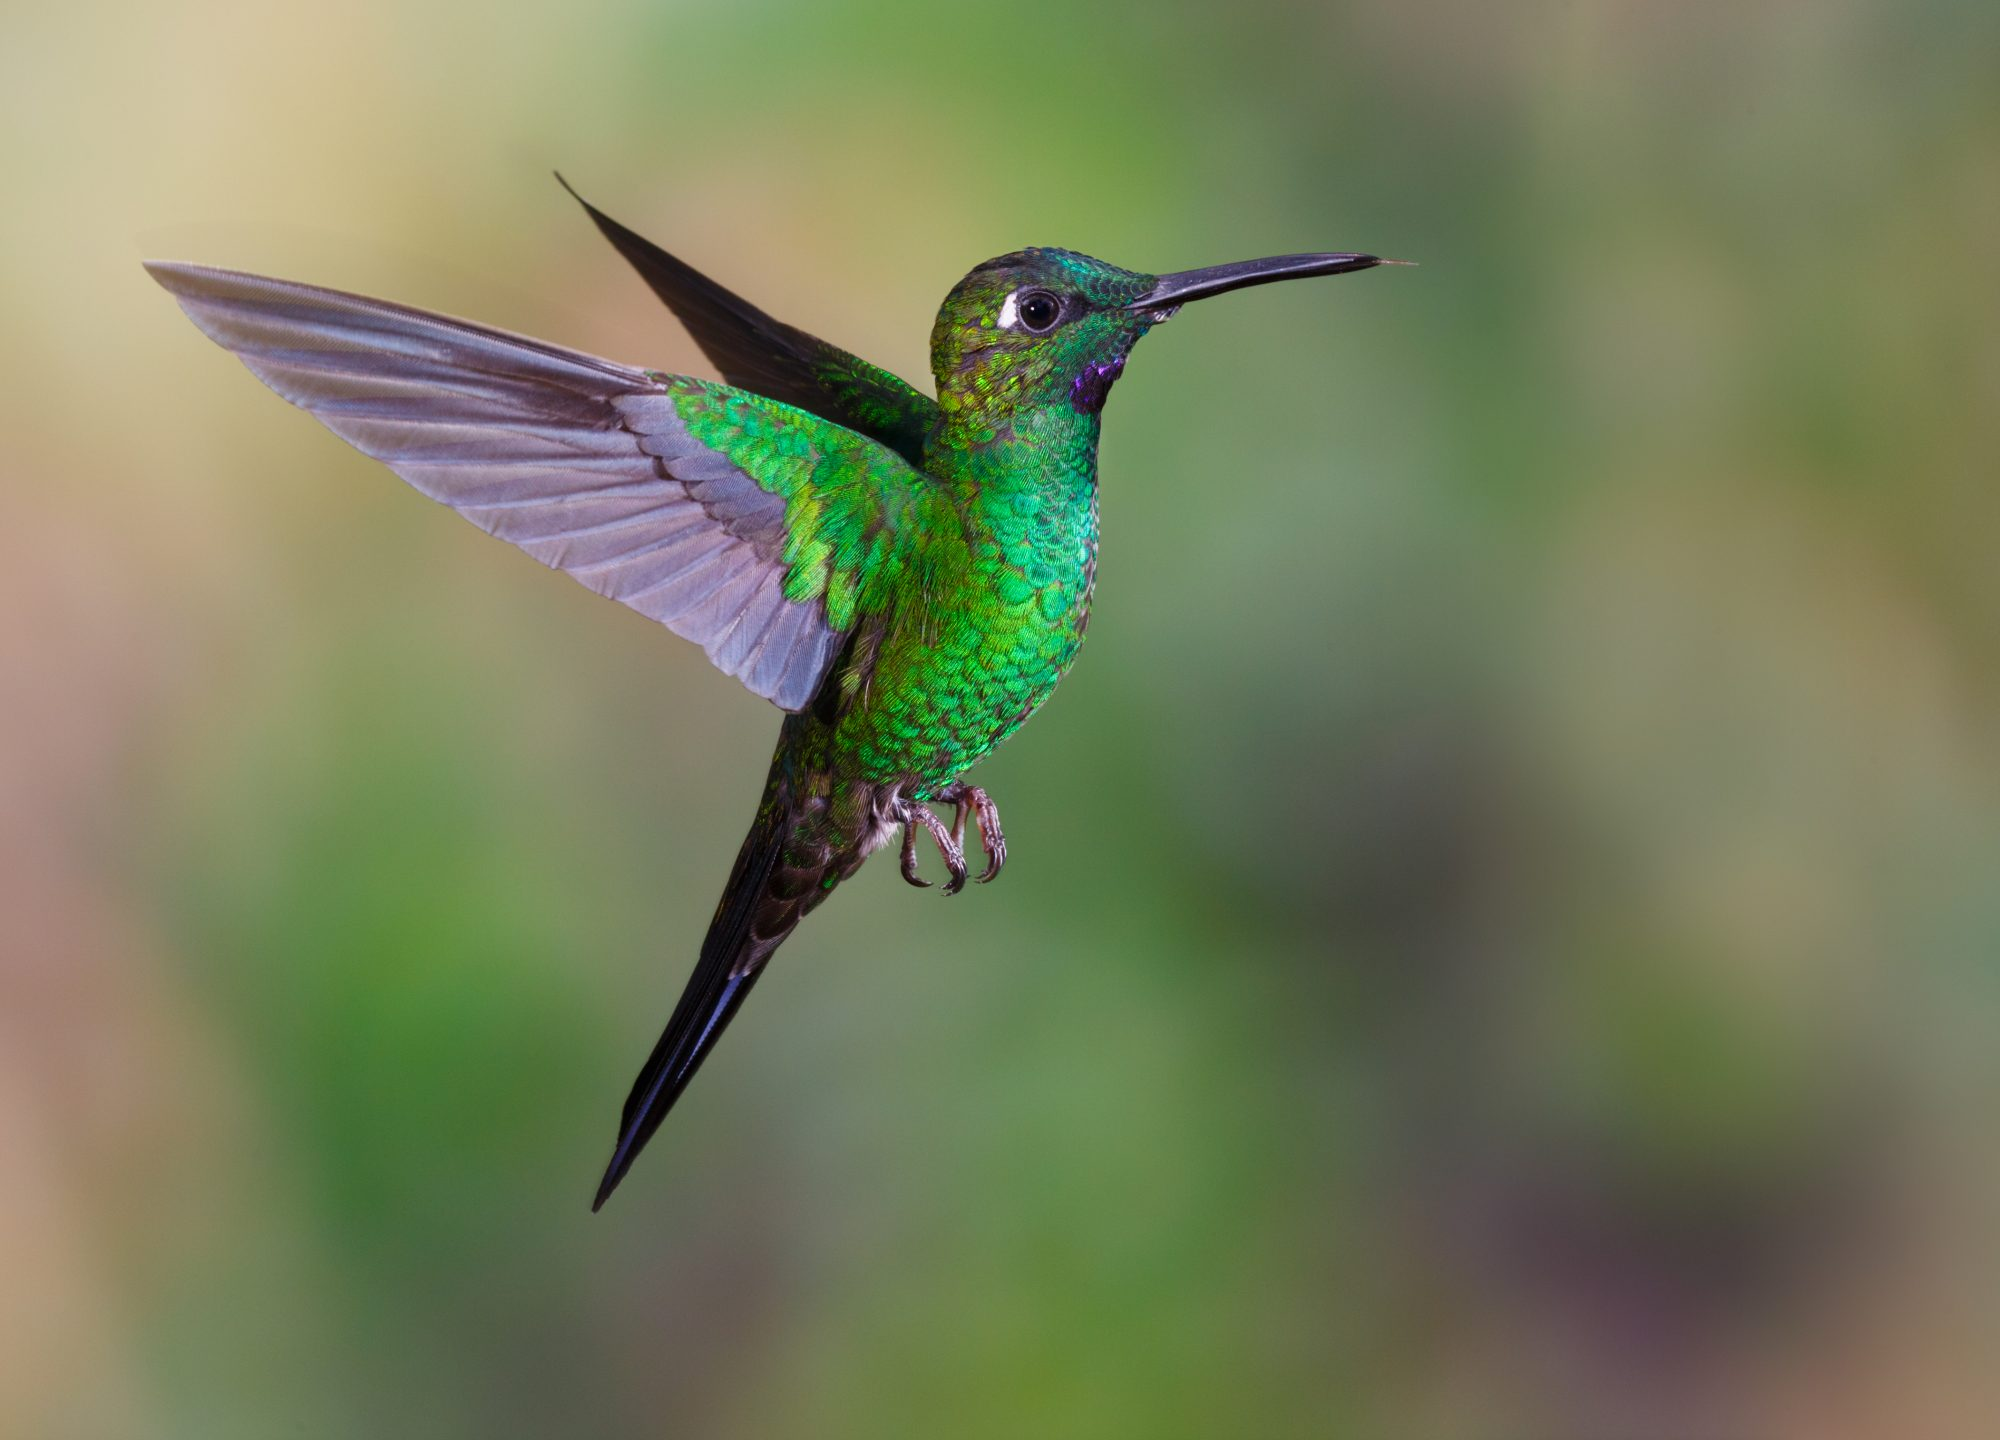 This Southern Climate Is Ideal for Gorgeous Plant with Hummingbird-Shaped Flowers